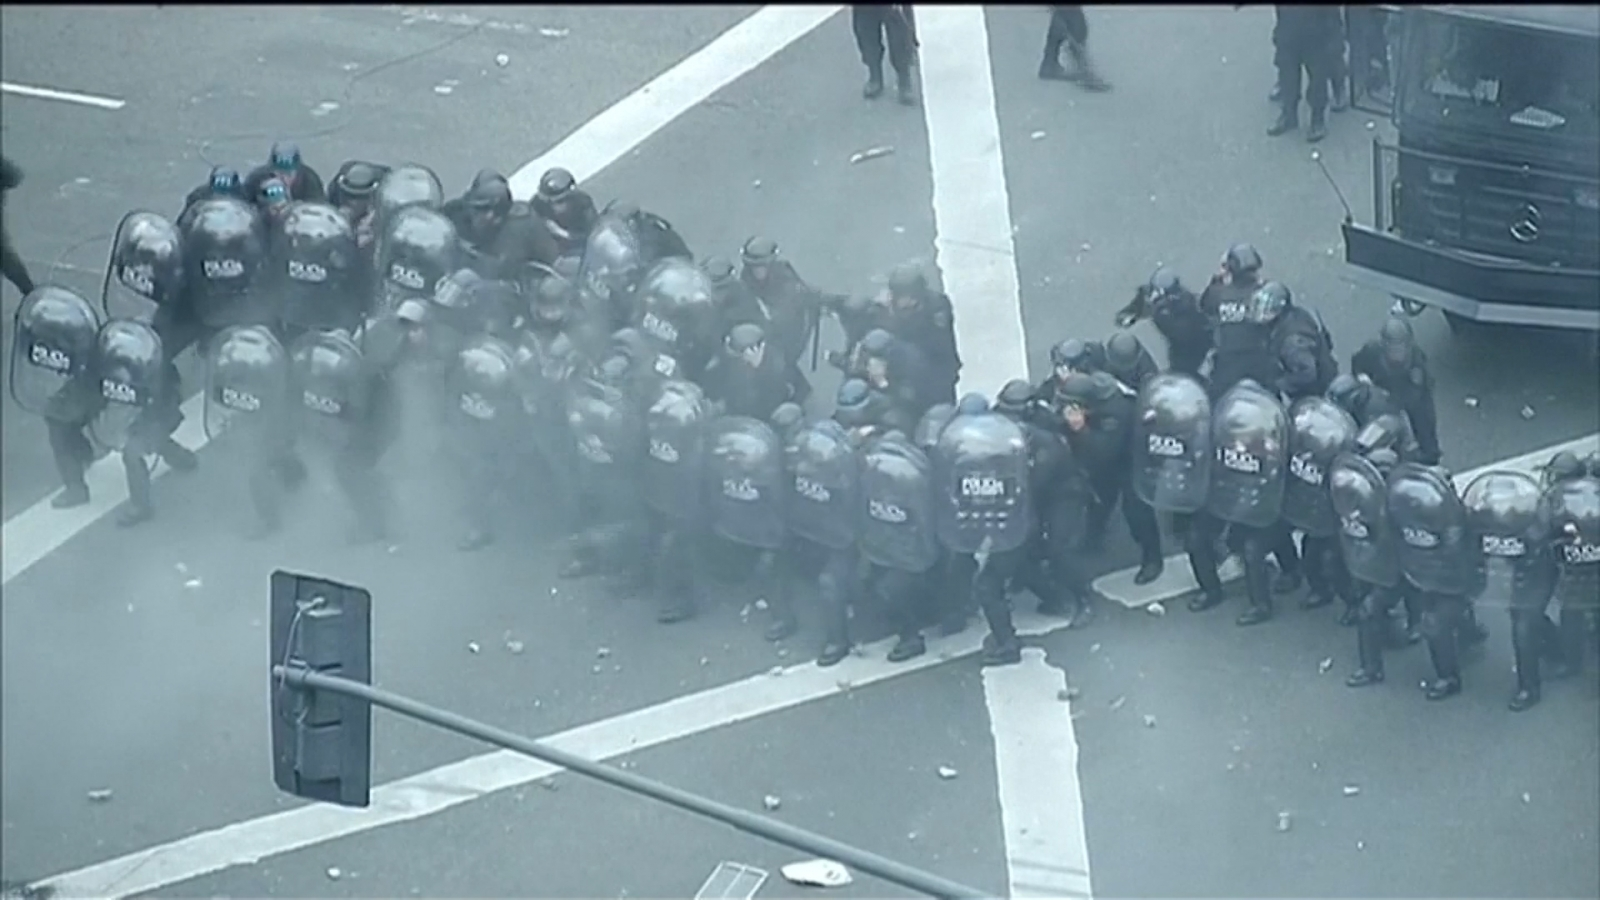 http://www.ibtimes.co.uk/watch-argentina-protesters-fight-police-streets-bottles-fire-1628301